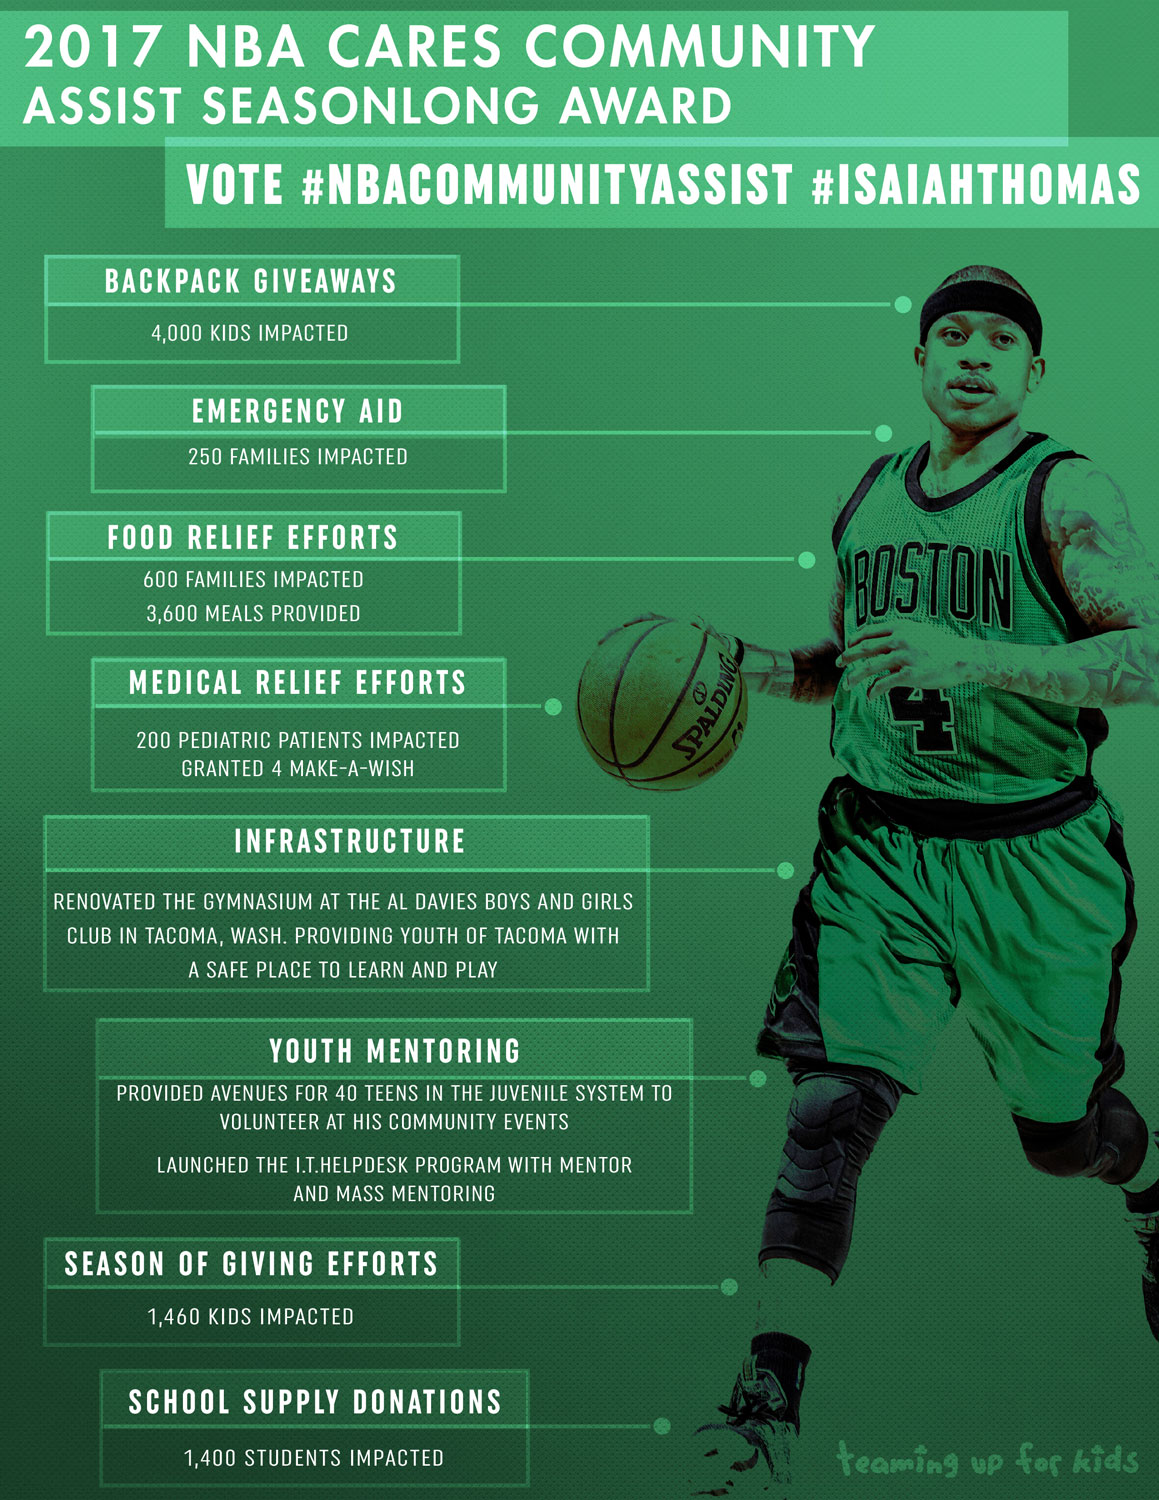 Vote for Isaiah - NBA Cares Community Assist Award